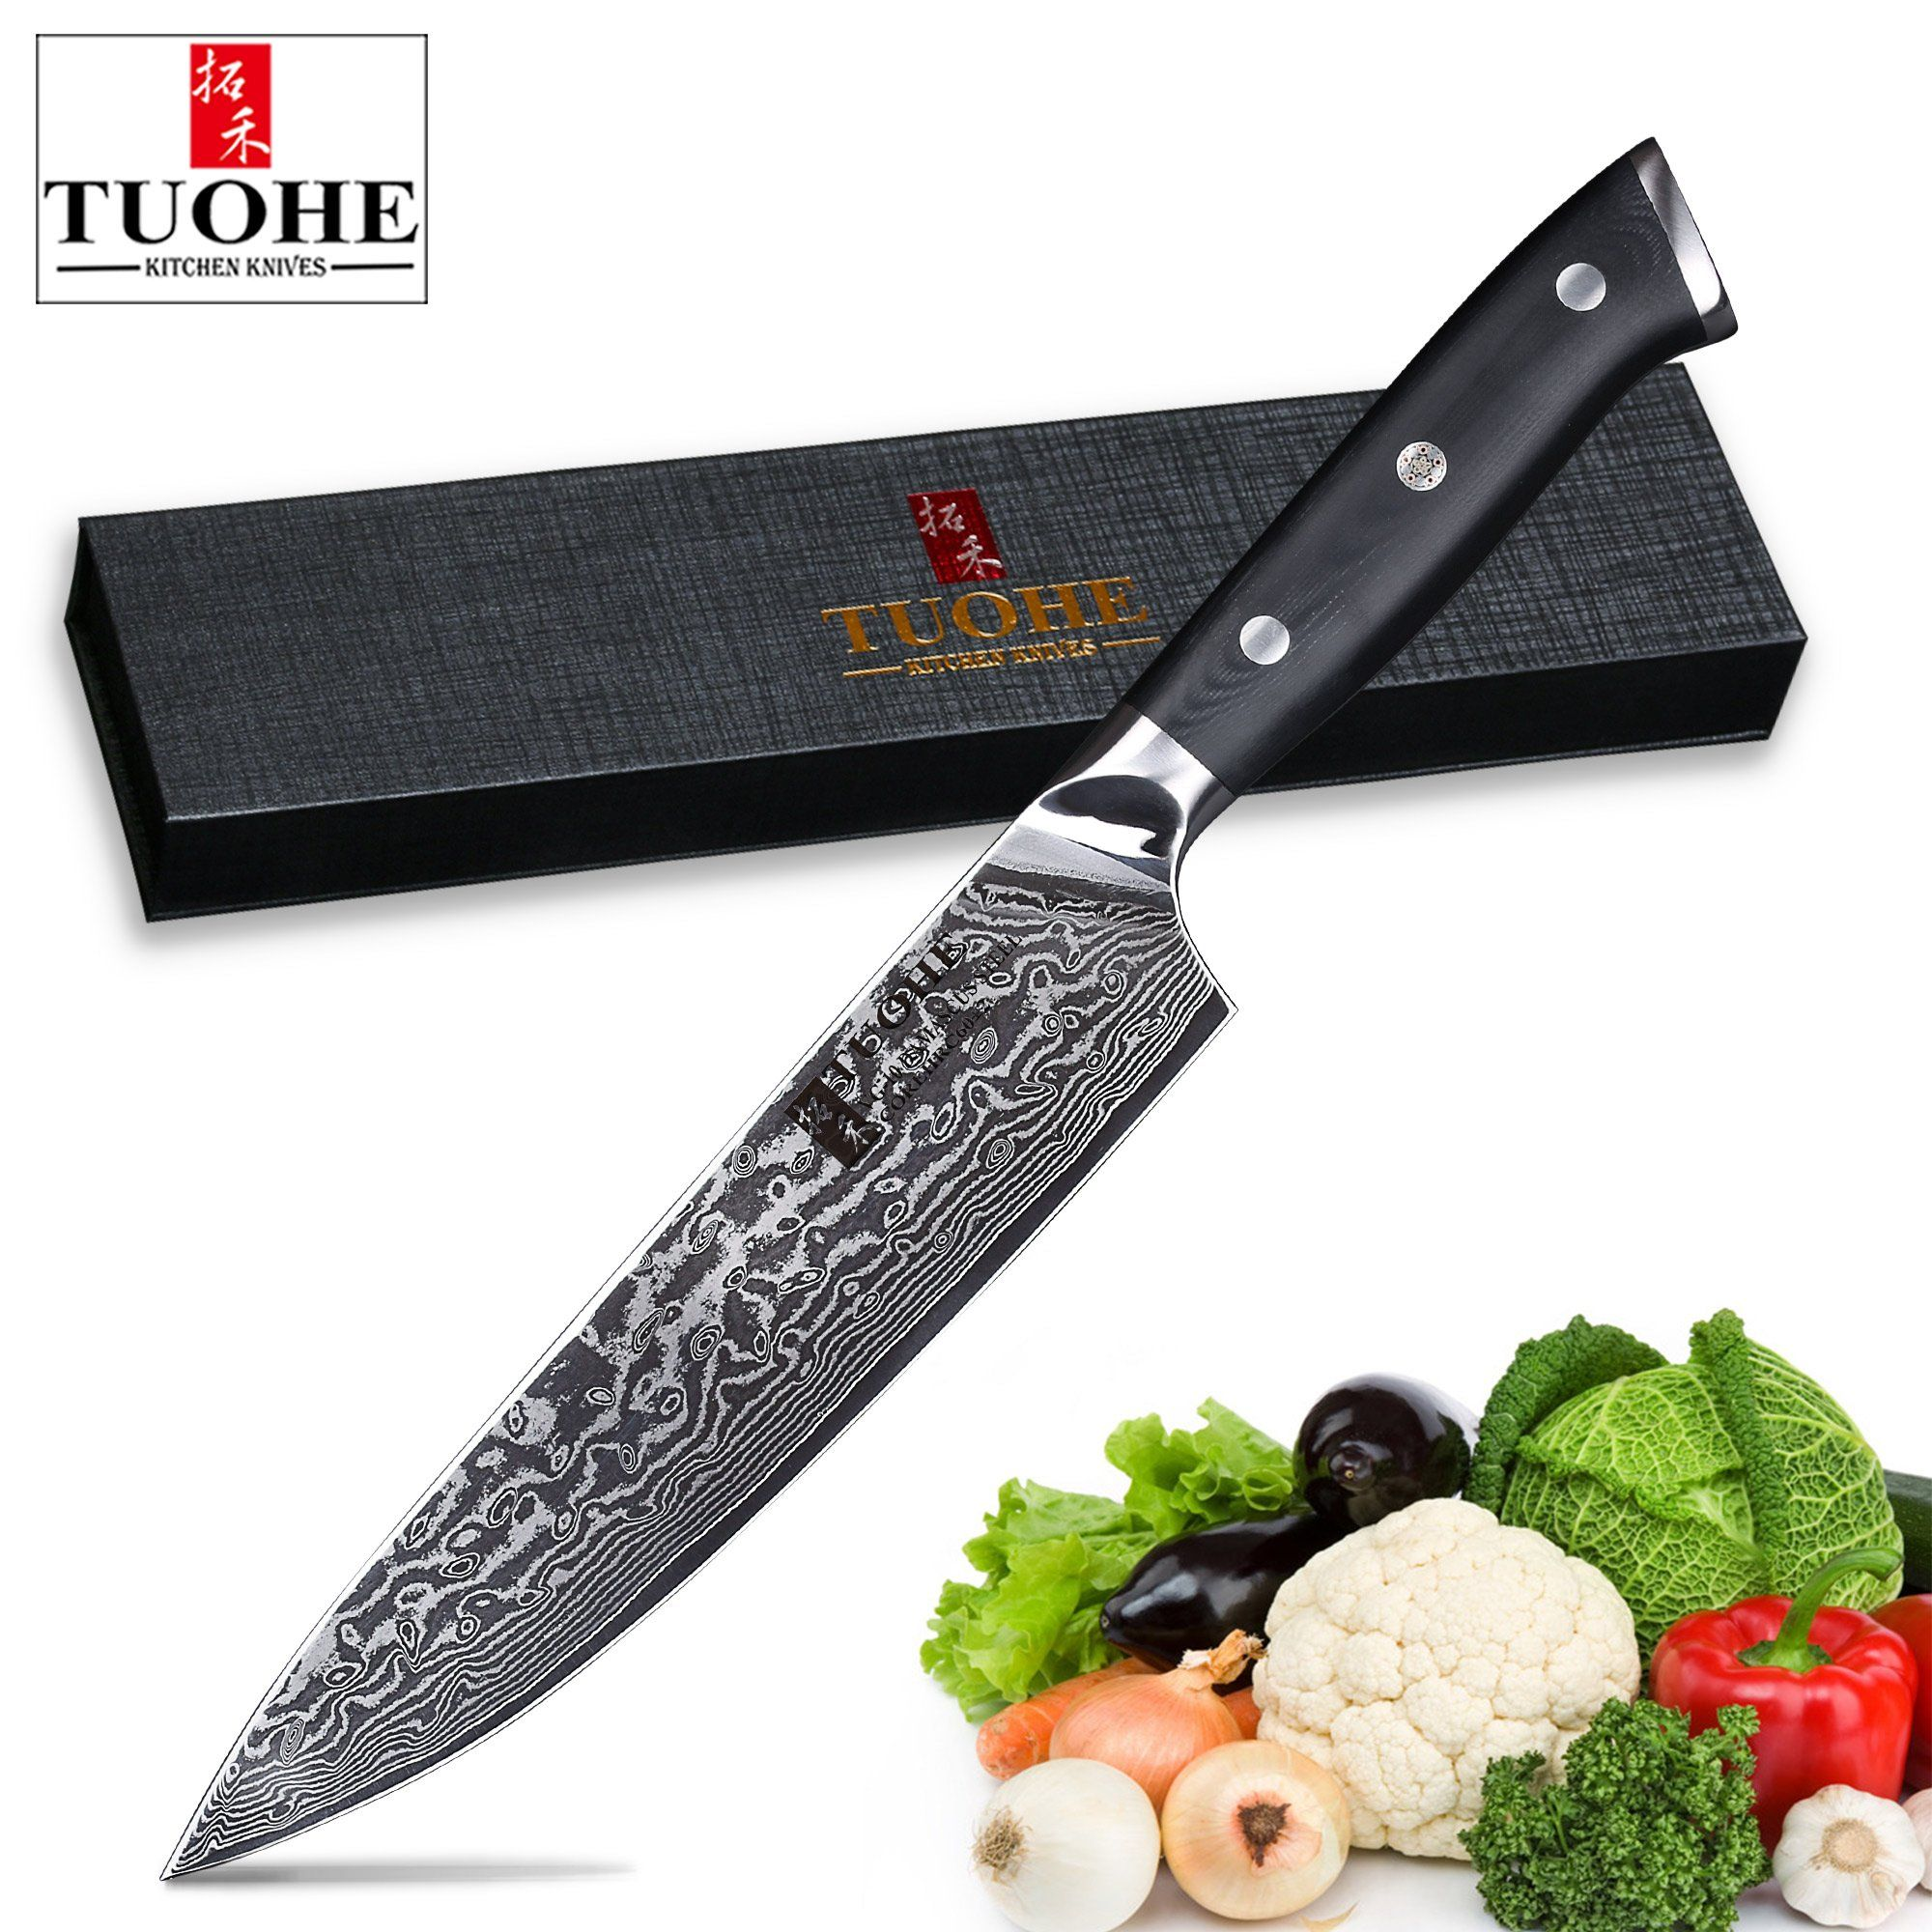 Knife Beautiful Sharp Nice Held By Hand See For This Vg10